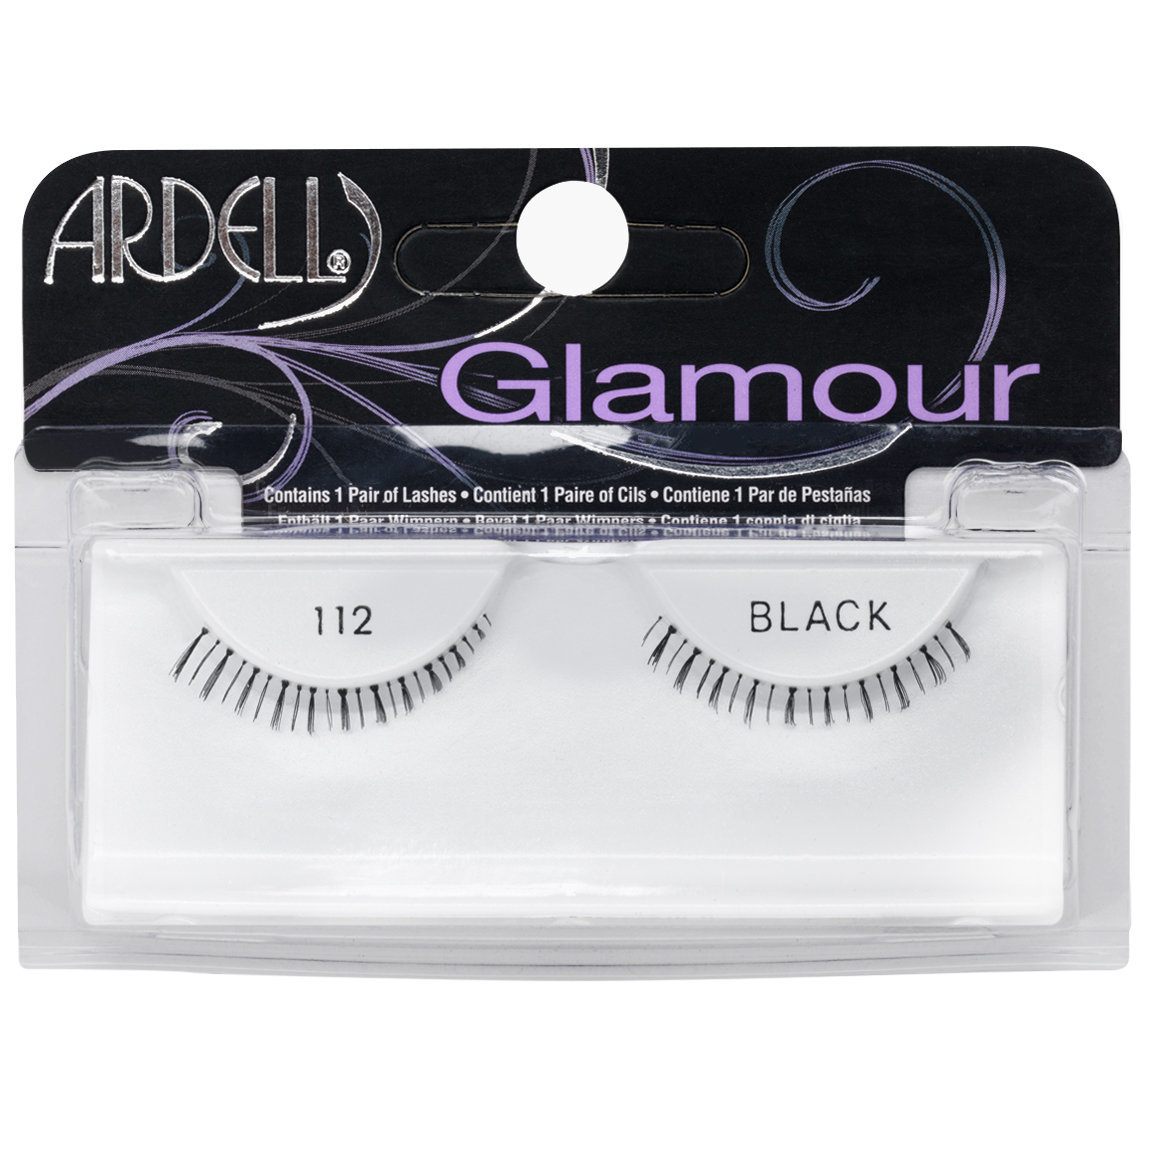 Ardell Glamour Lashes 112 Black